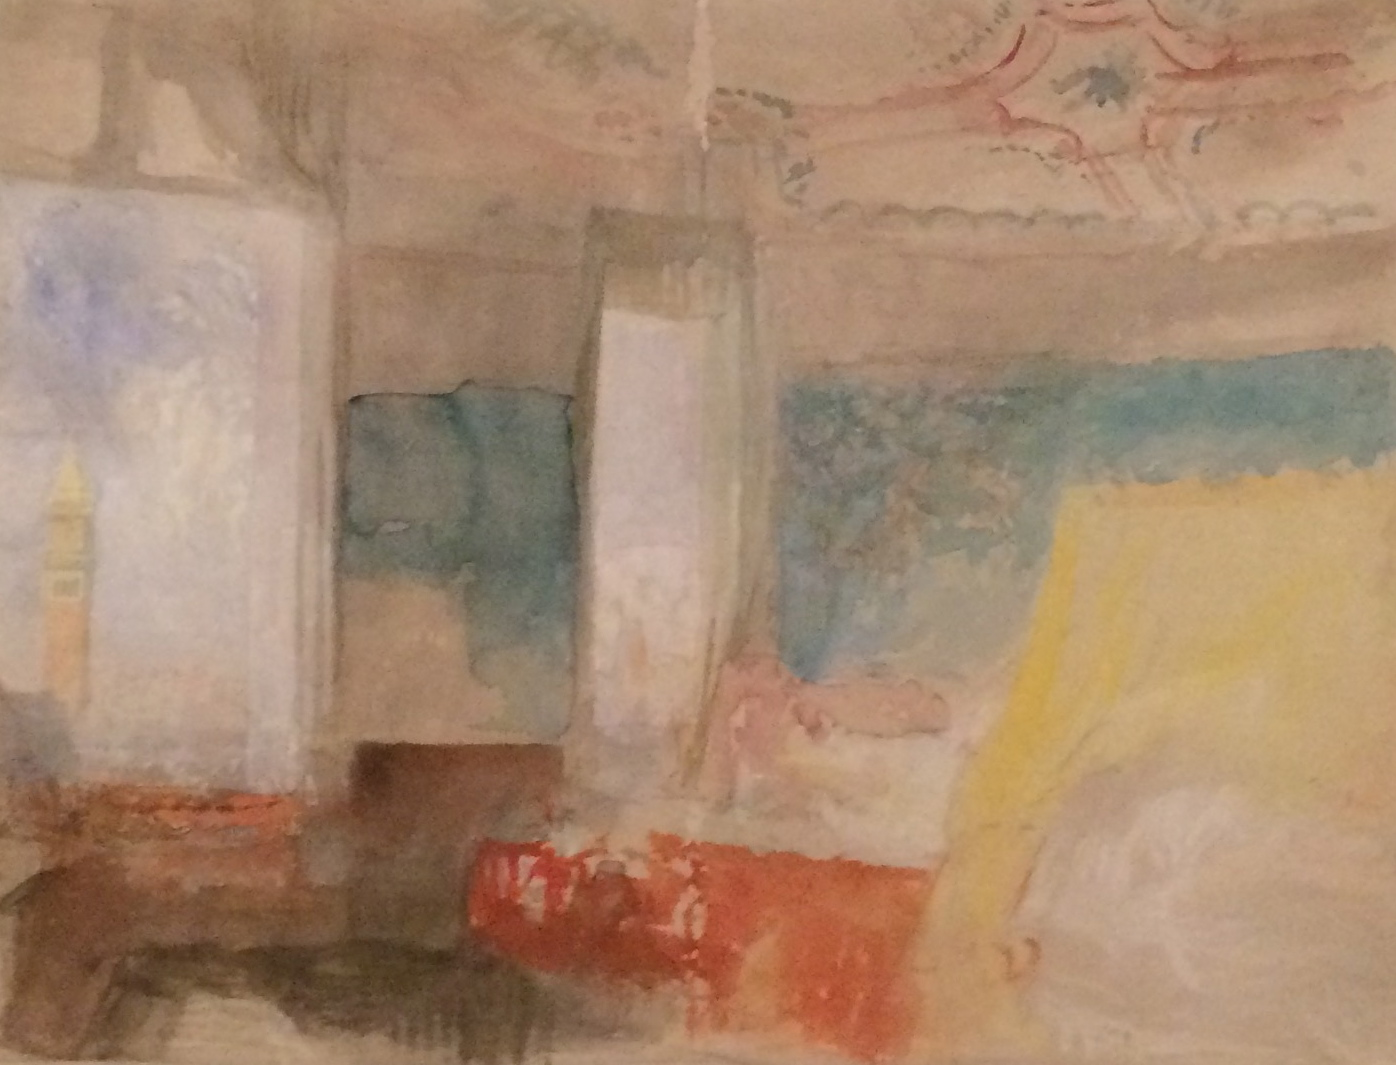 Turner's Bedroom in the Palazzo Giustinian (The Hotel Europe), Venice; Watercolor and gouache on paper ca. 1840